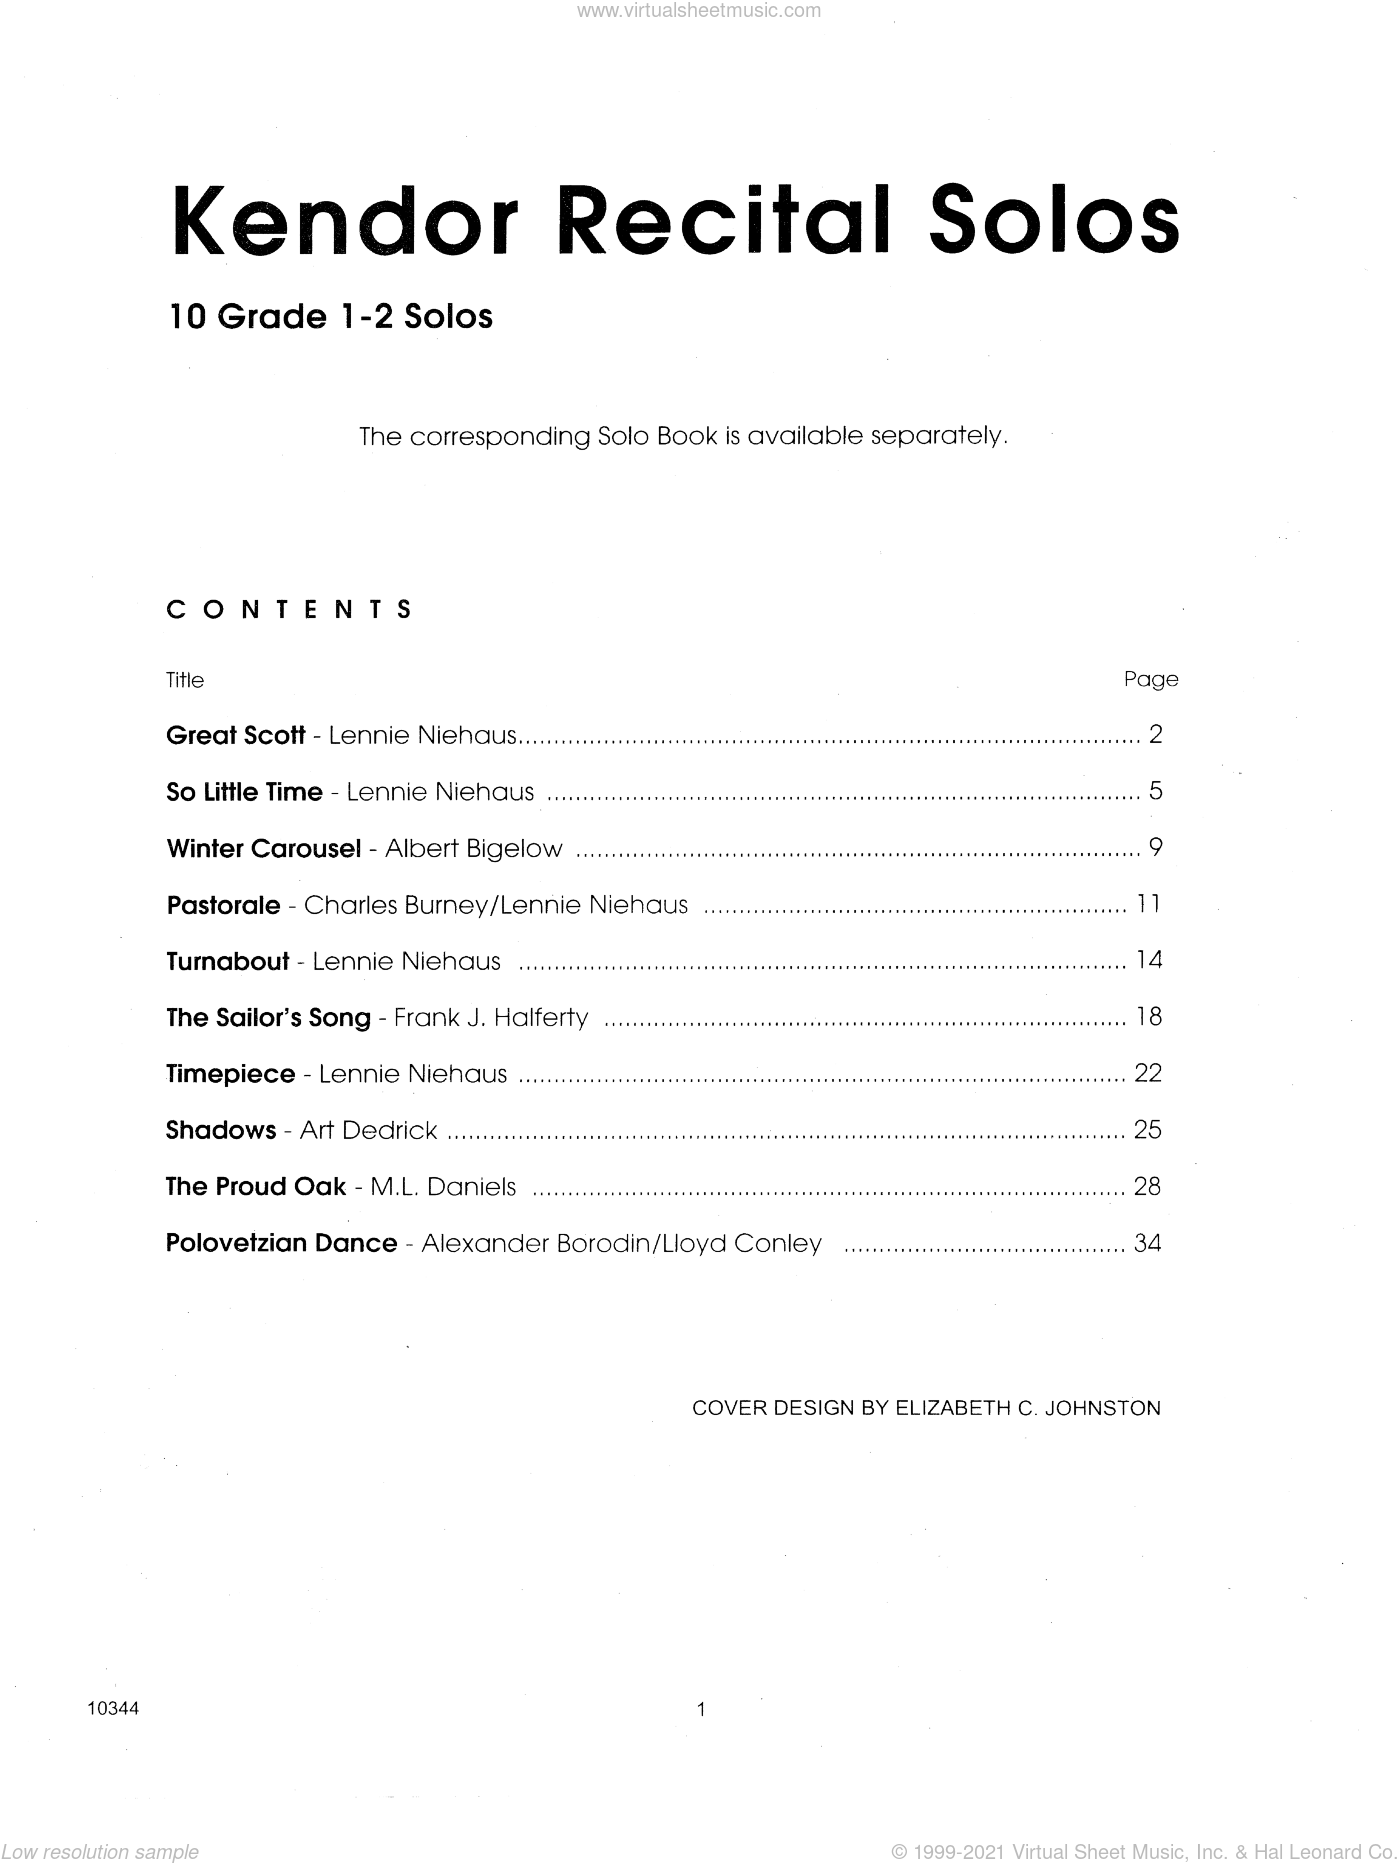 Kendor Recital Solos - Trombone - Piano Accompaniment sheet music for trombone and piano. Score Image Preview.